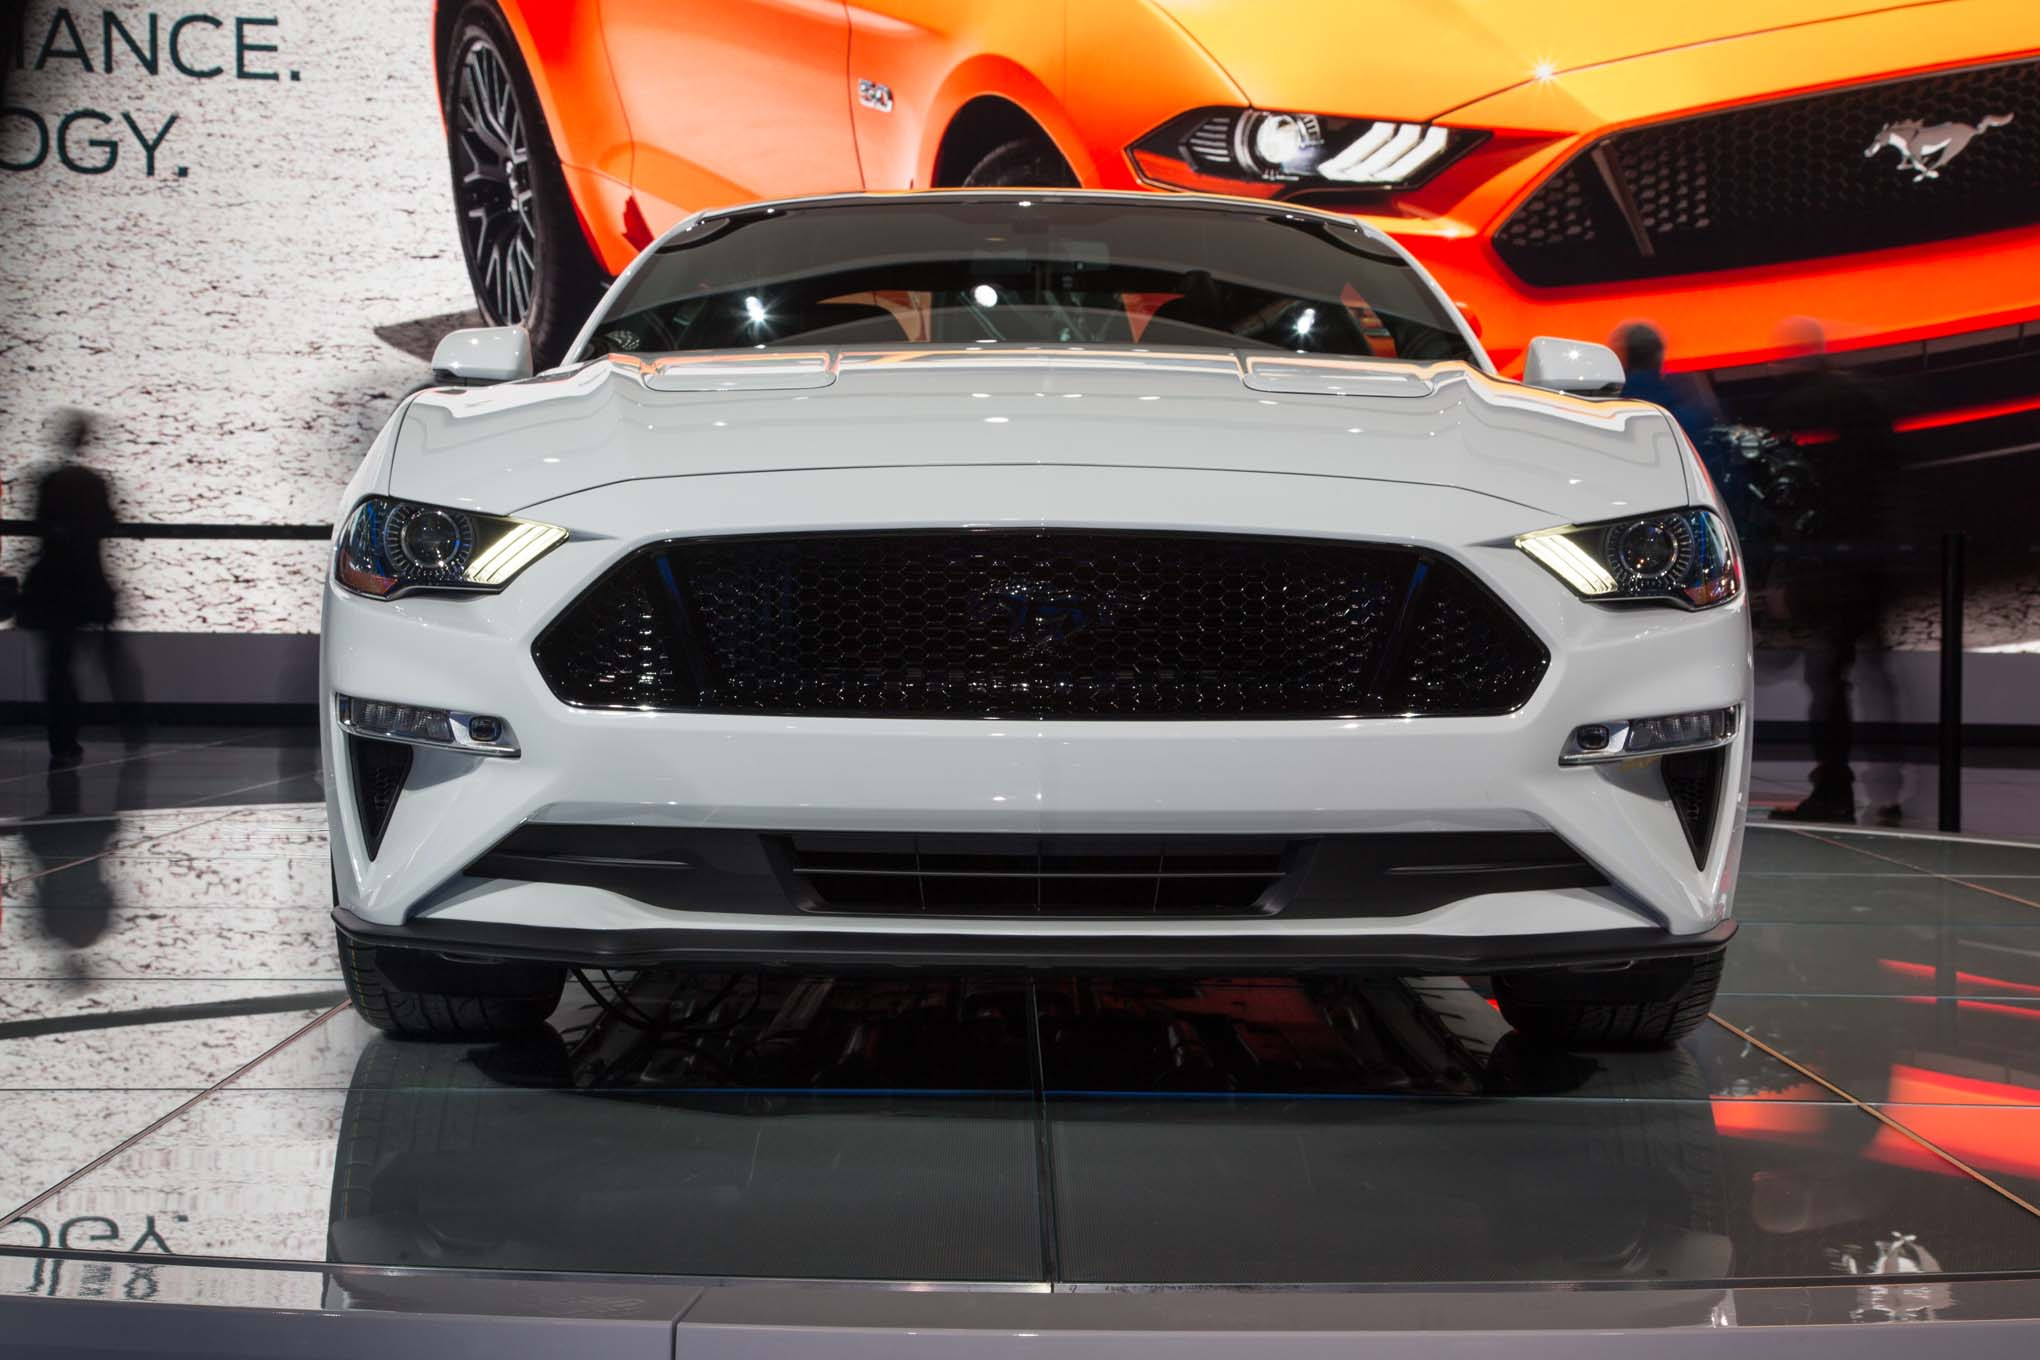 2018 Ford Mustang Gt Front End 02